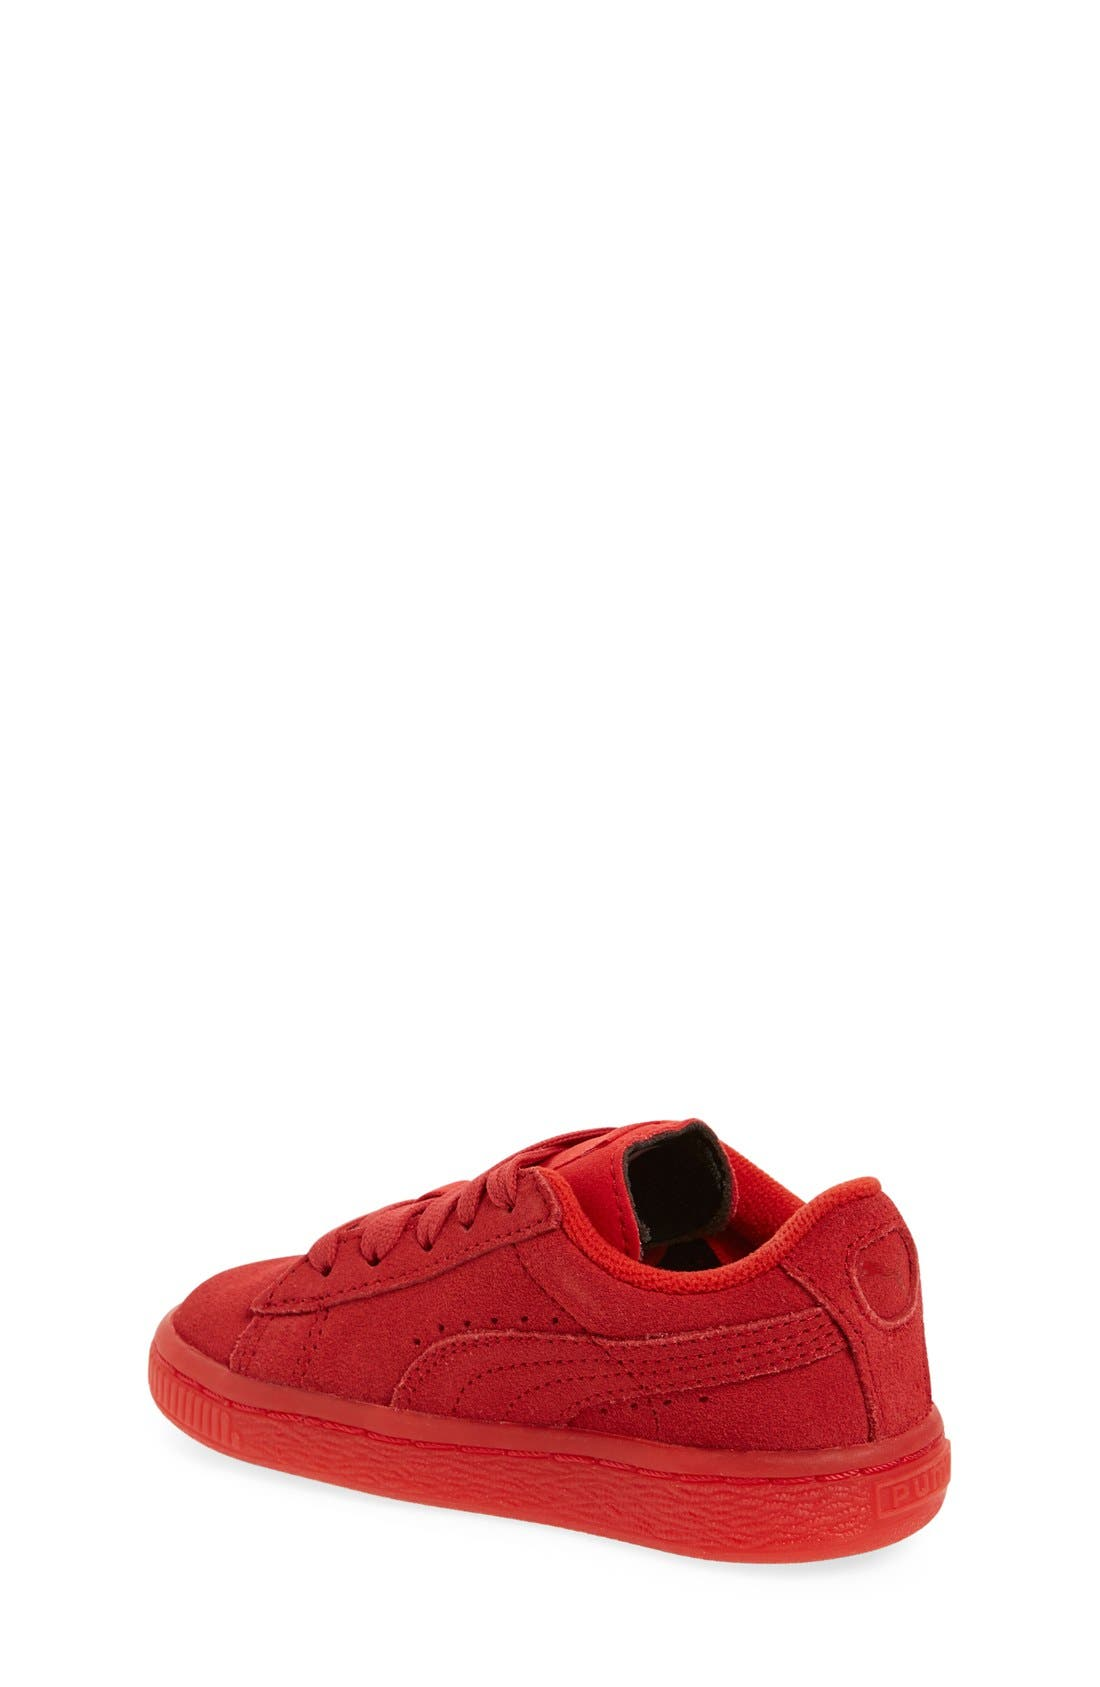 'Suede Iced' Sneaker,                             Alternate thumbnail 2, color,                             Red